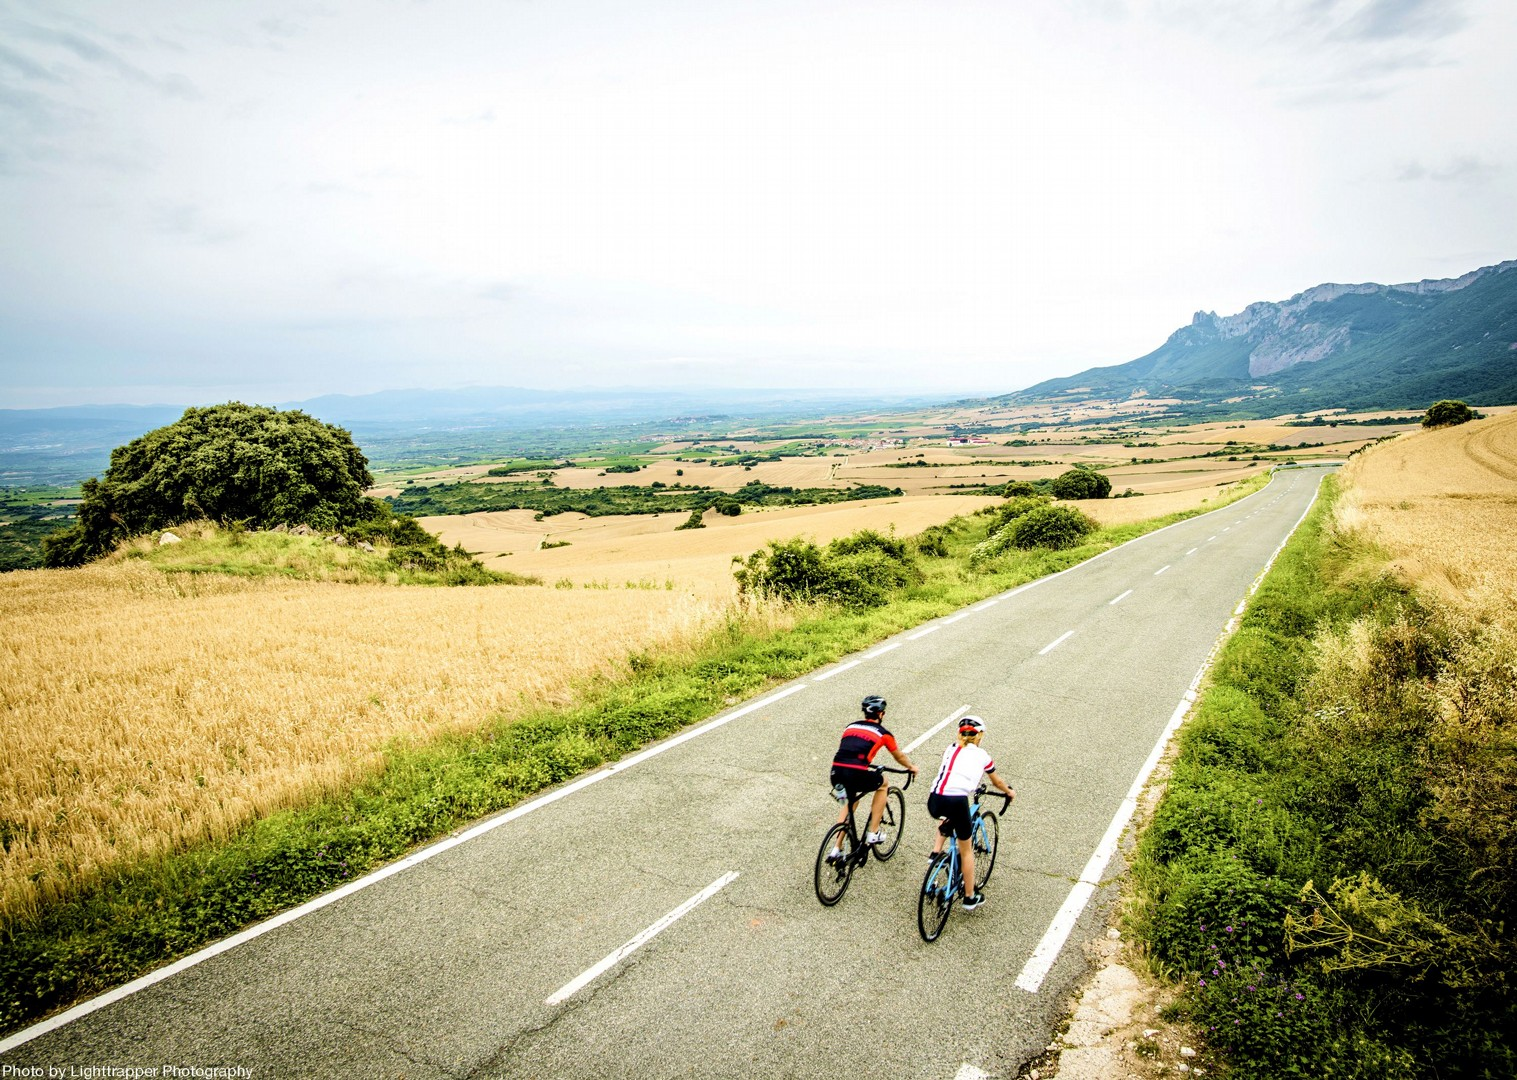 spain-road-cycling-la-rioja-smooth-roads.jpg - Northern Spain - La Rioja - Ruta del Vino - Self-Guided Road Cycling Holiday - Road Cycling